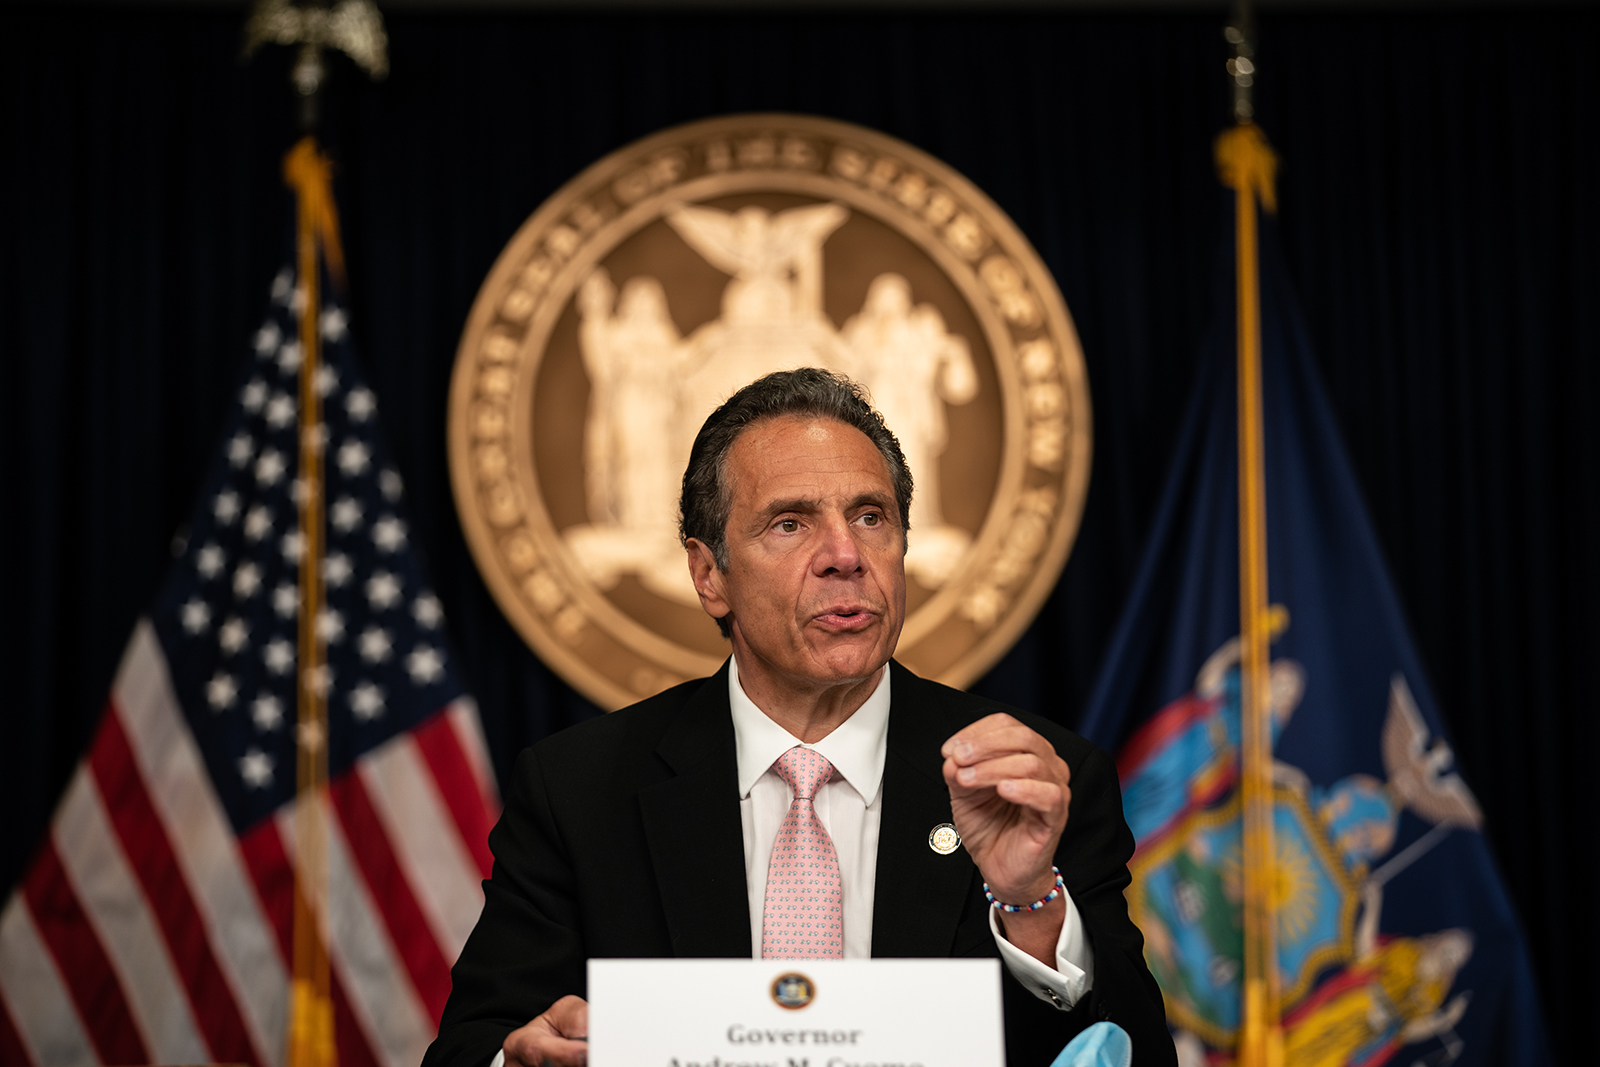 New York Gov. Andrew Cuomo speaks during the daily media briefing in New York, on June 12.